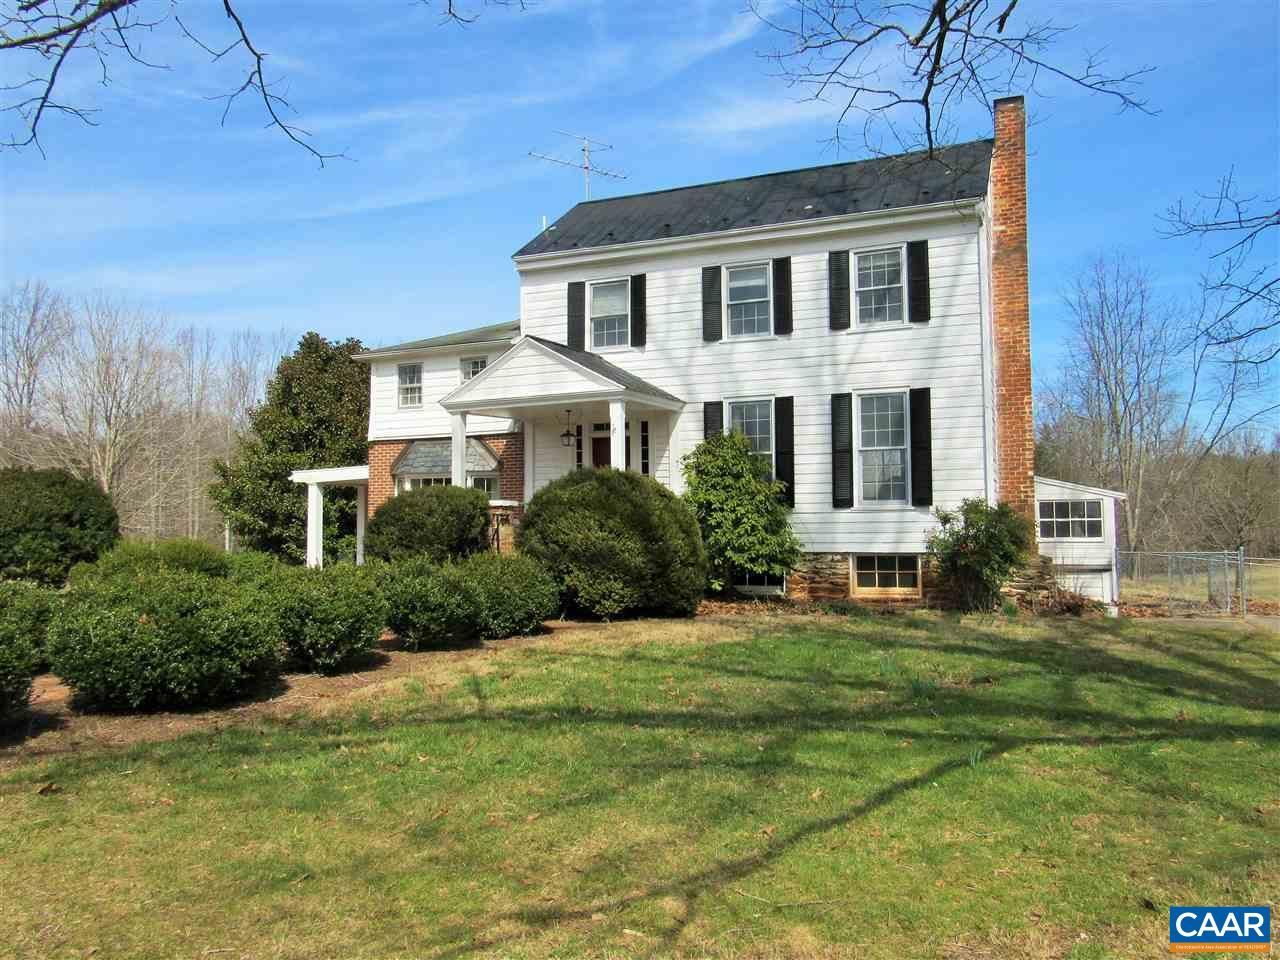 1235 EARLEY FARM RD, AMHERST, VA 24521